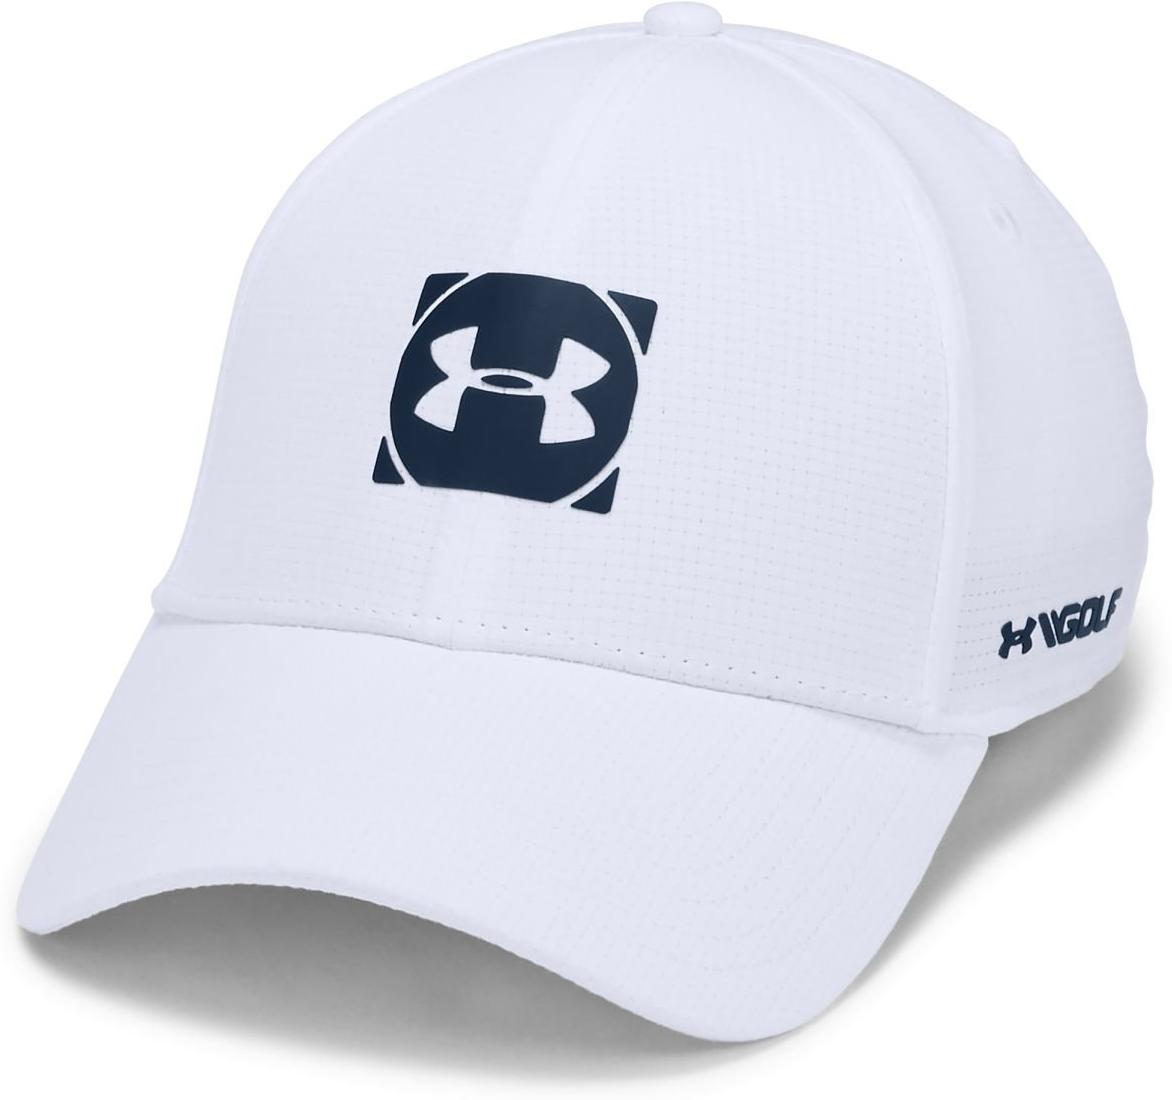 Gorra Under Armour Men s Official Tour Cap 3.0